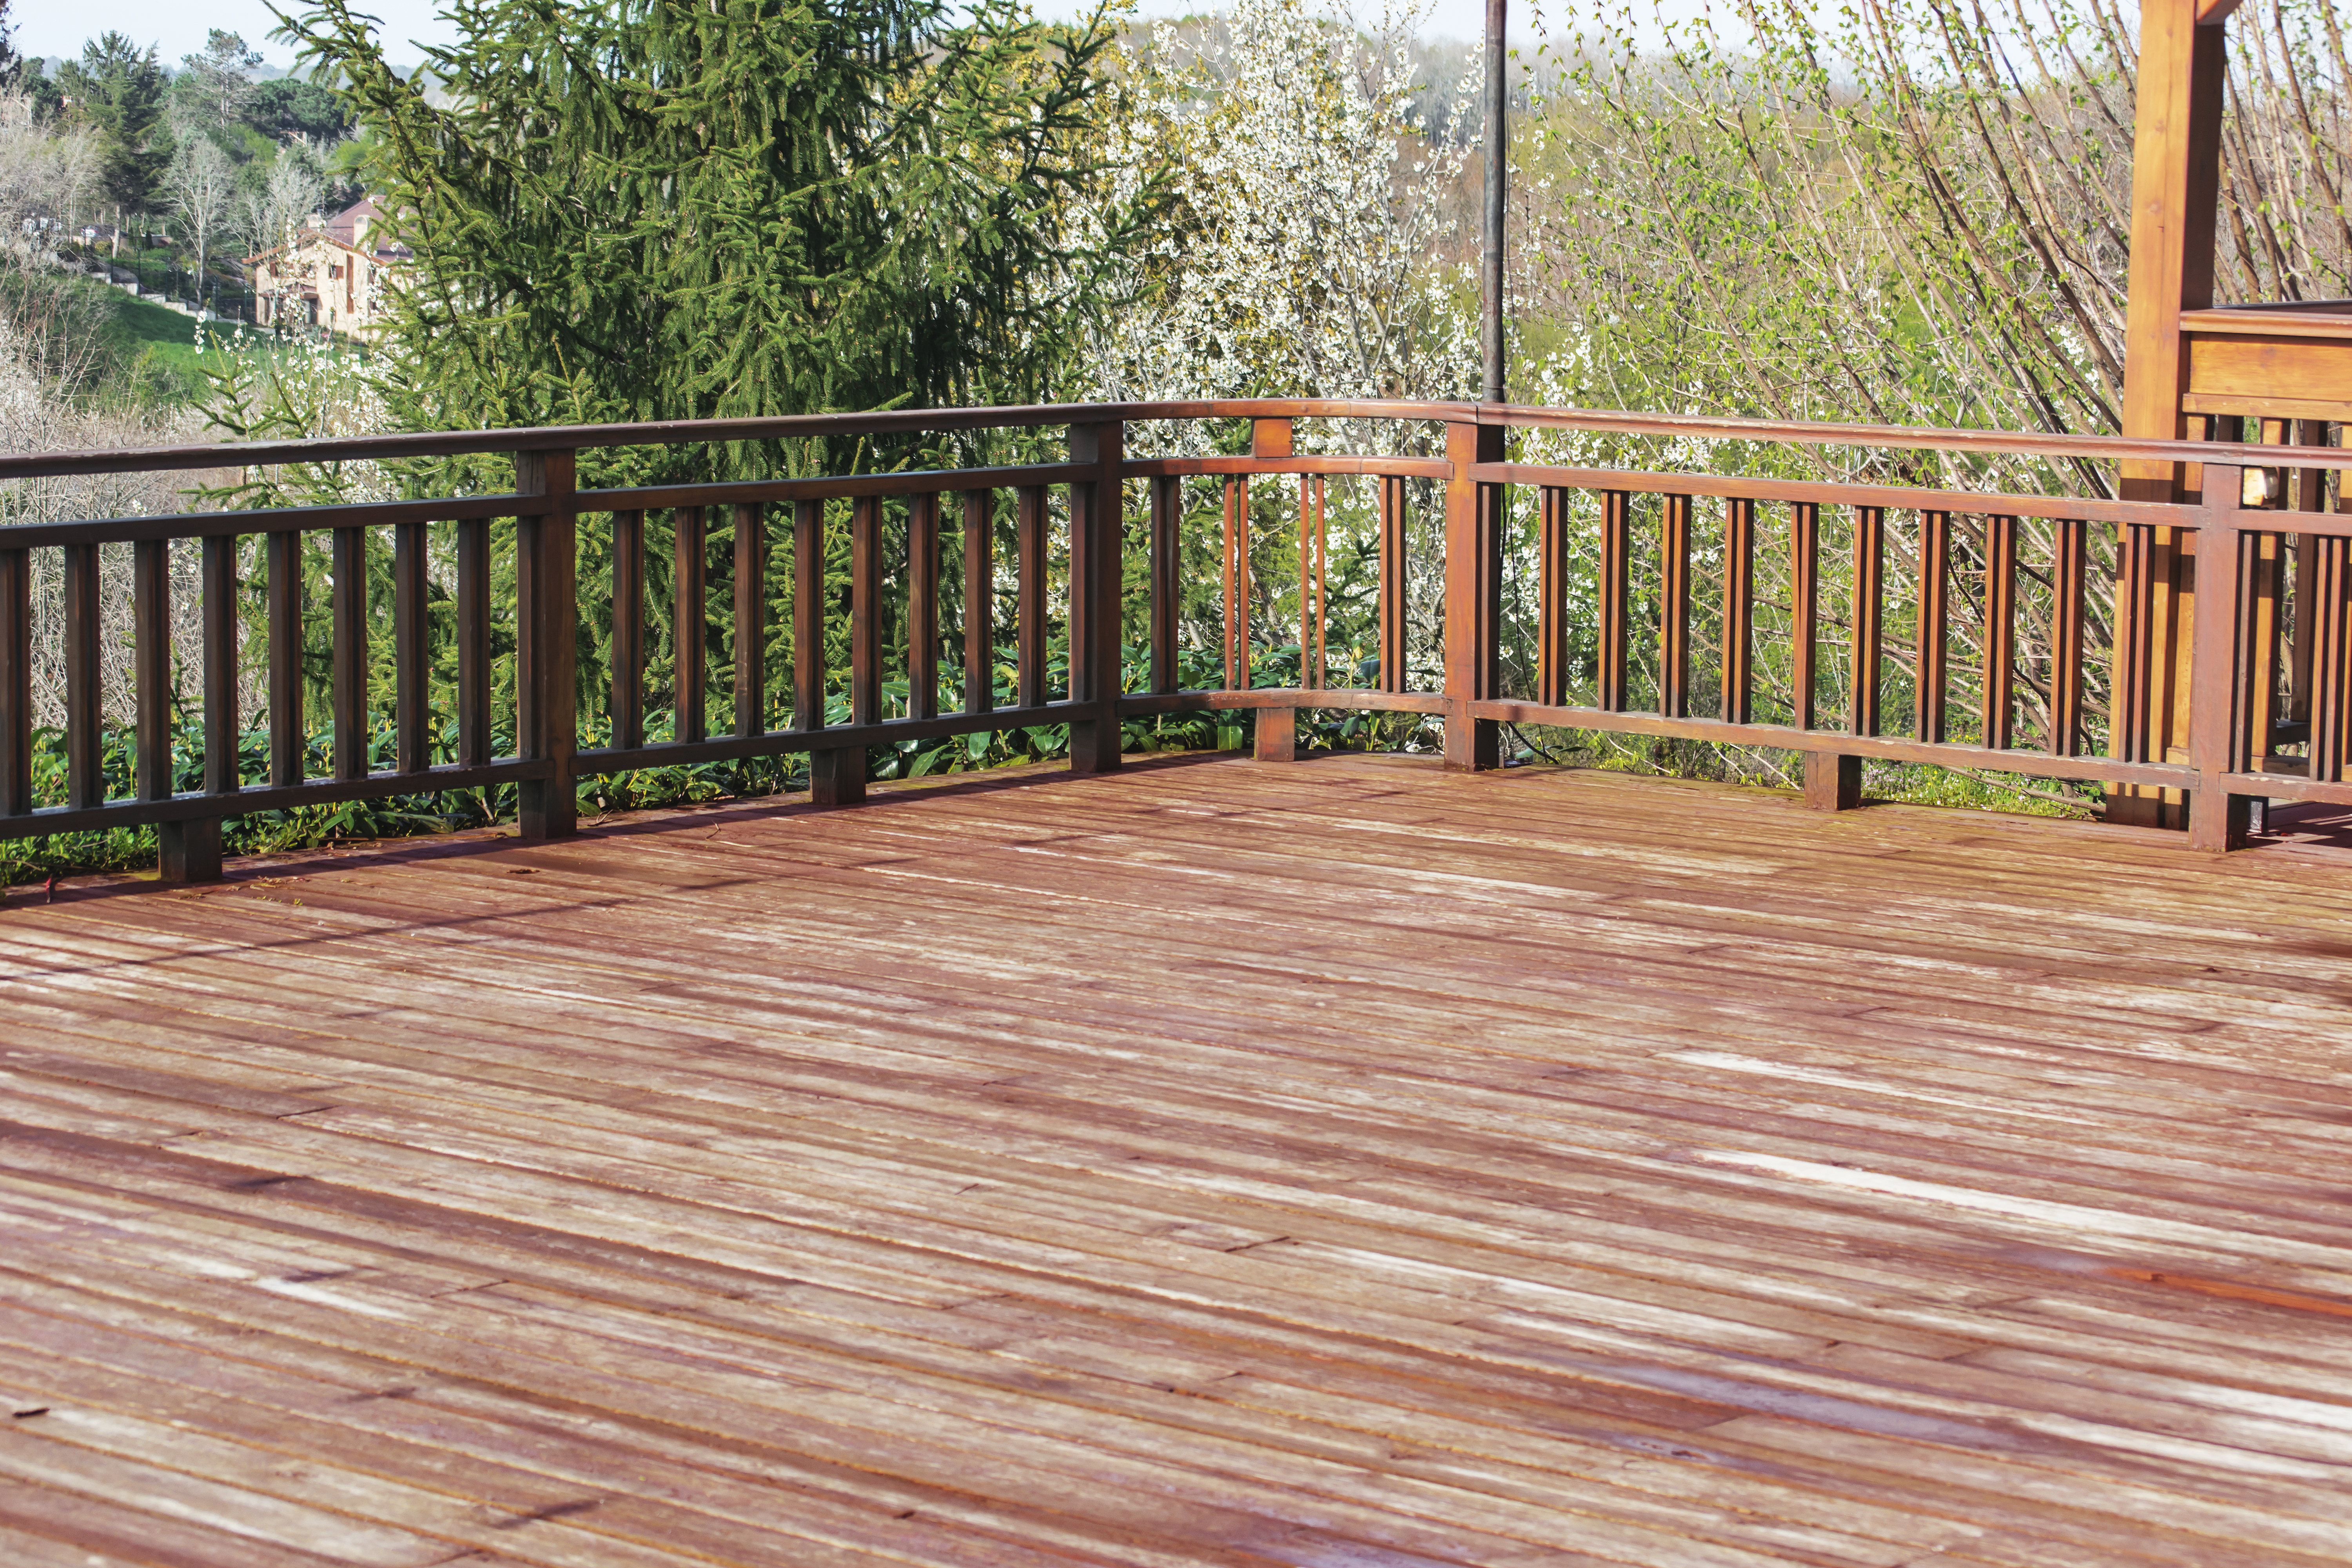 U S  Building Codes for Deck Railing | Home Guides | SF Gate